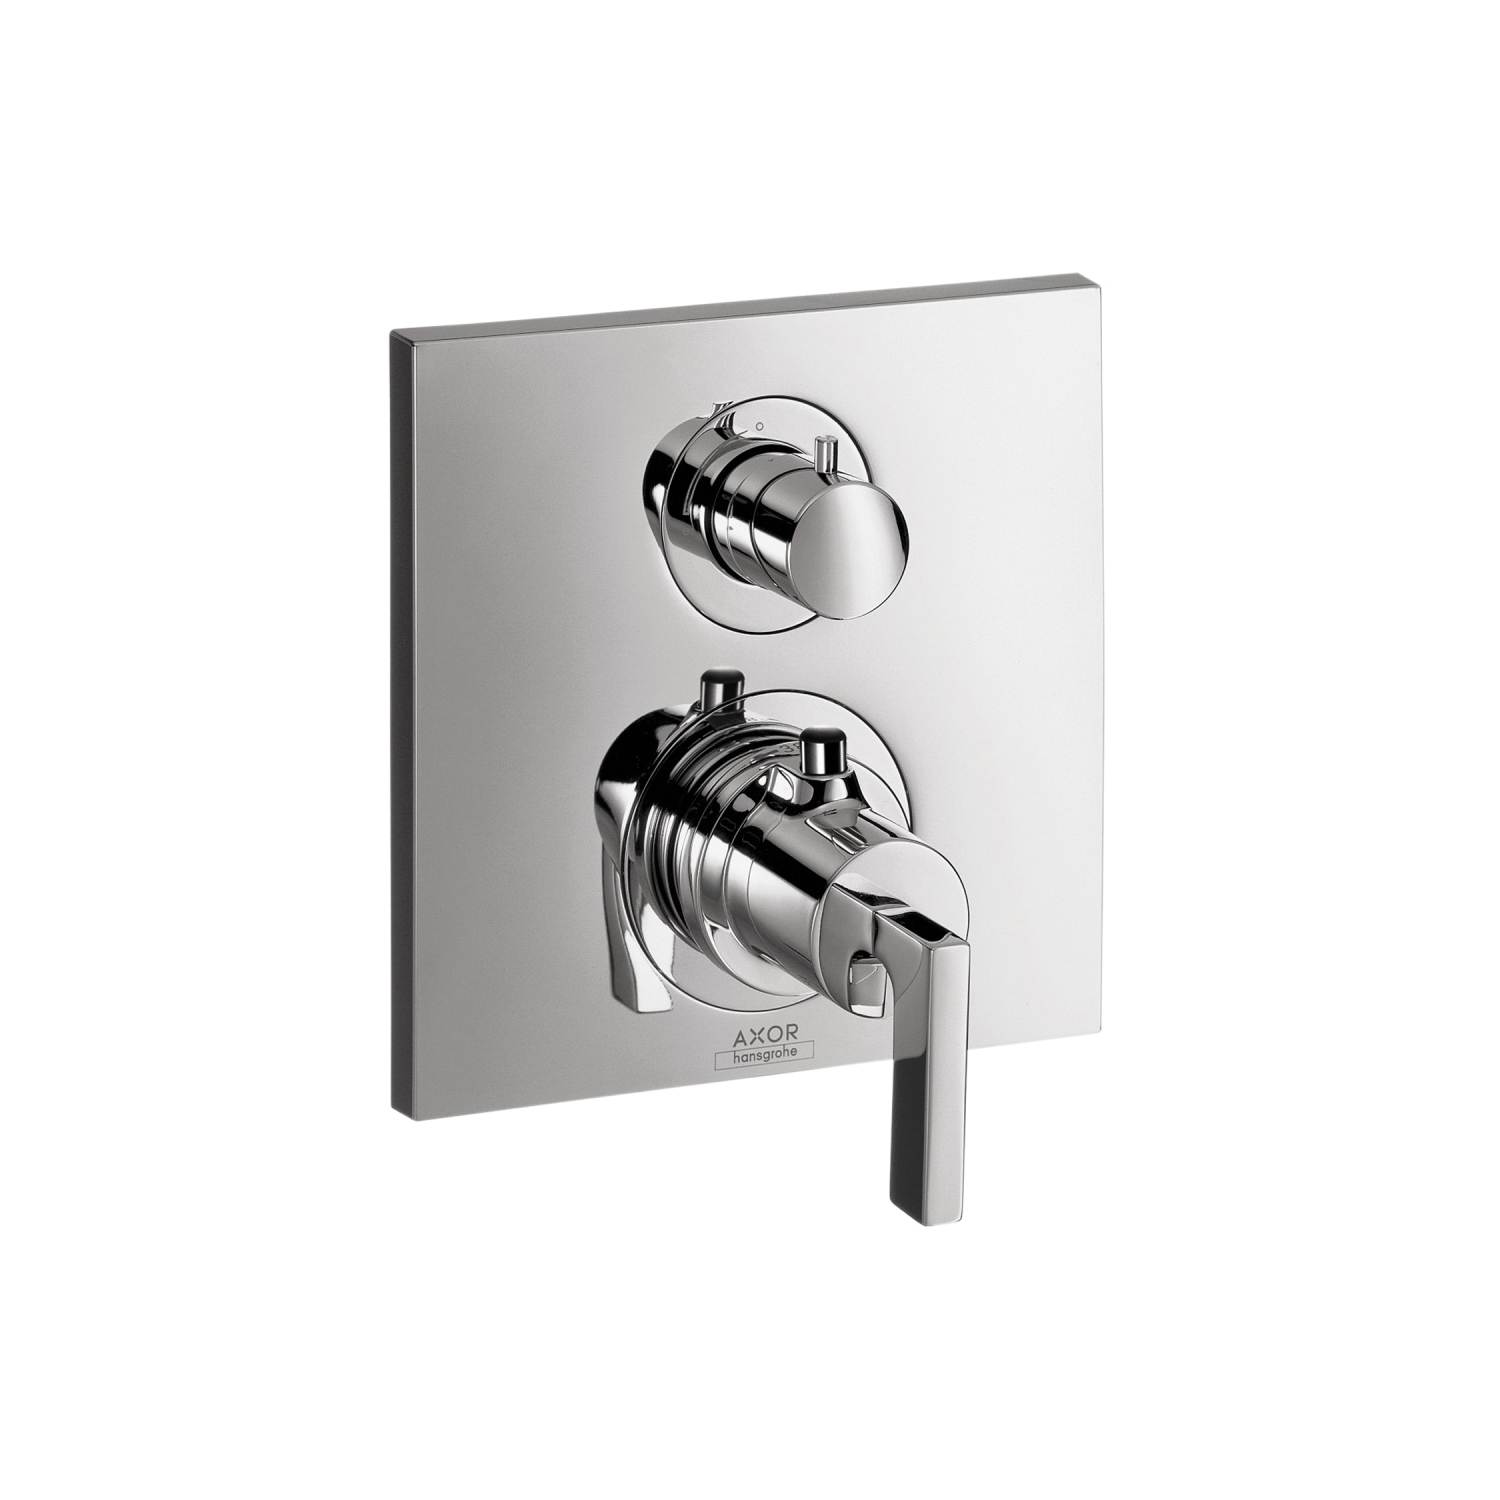 Hansgrohe 39700001 Axor Citterio Thermostatic Trim, Hand Shower Yes/No: No, Chrome Plated